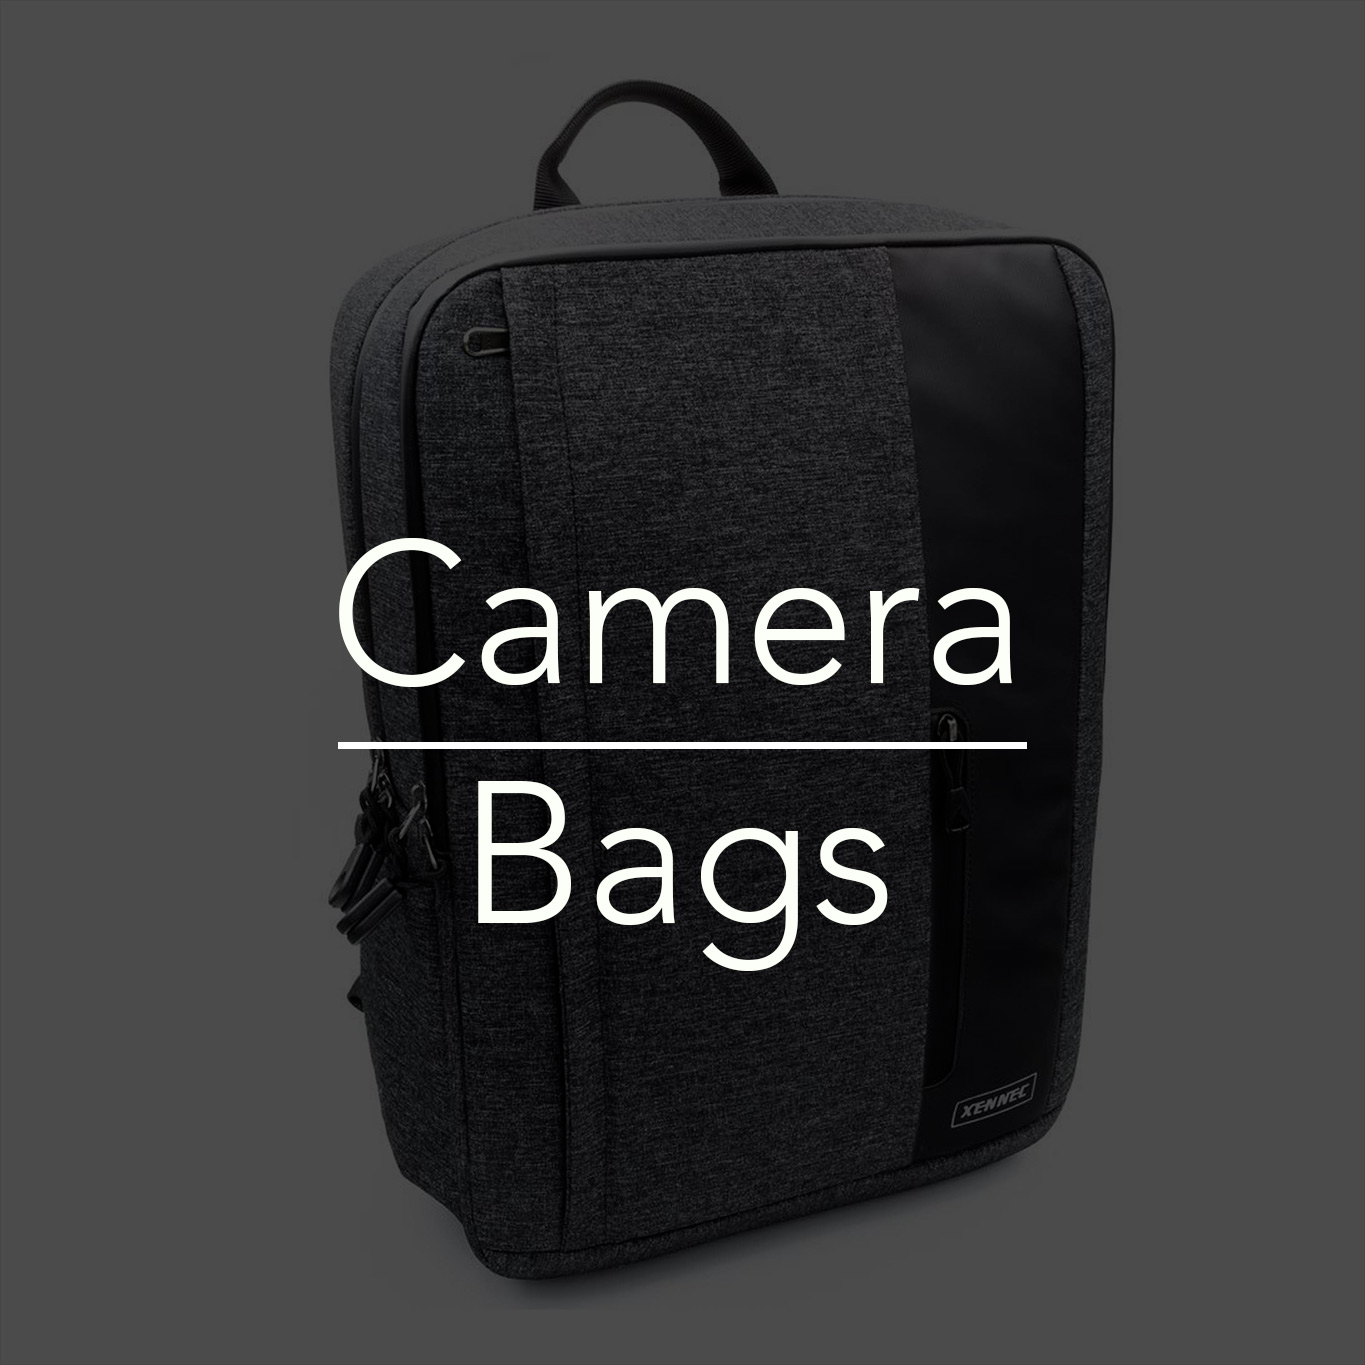 Xennec Camera Bags Australia with Afterpay